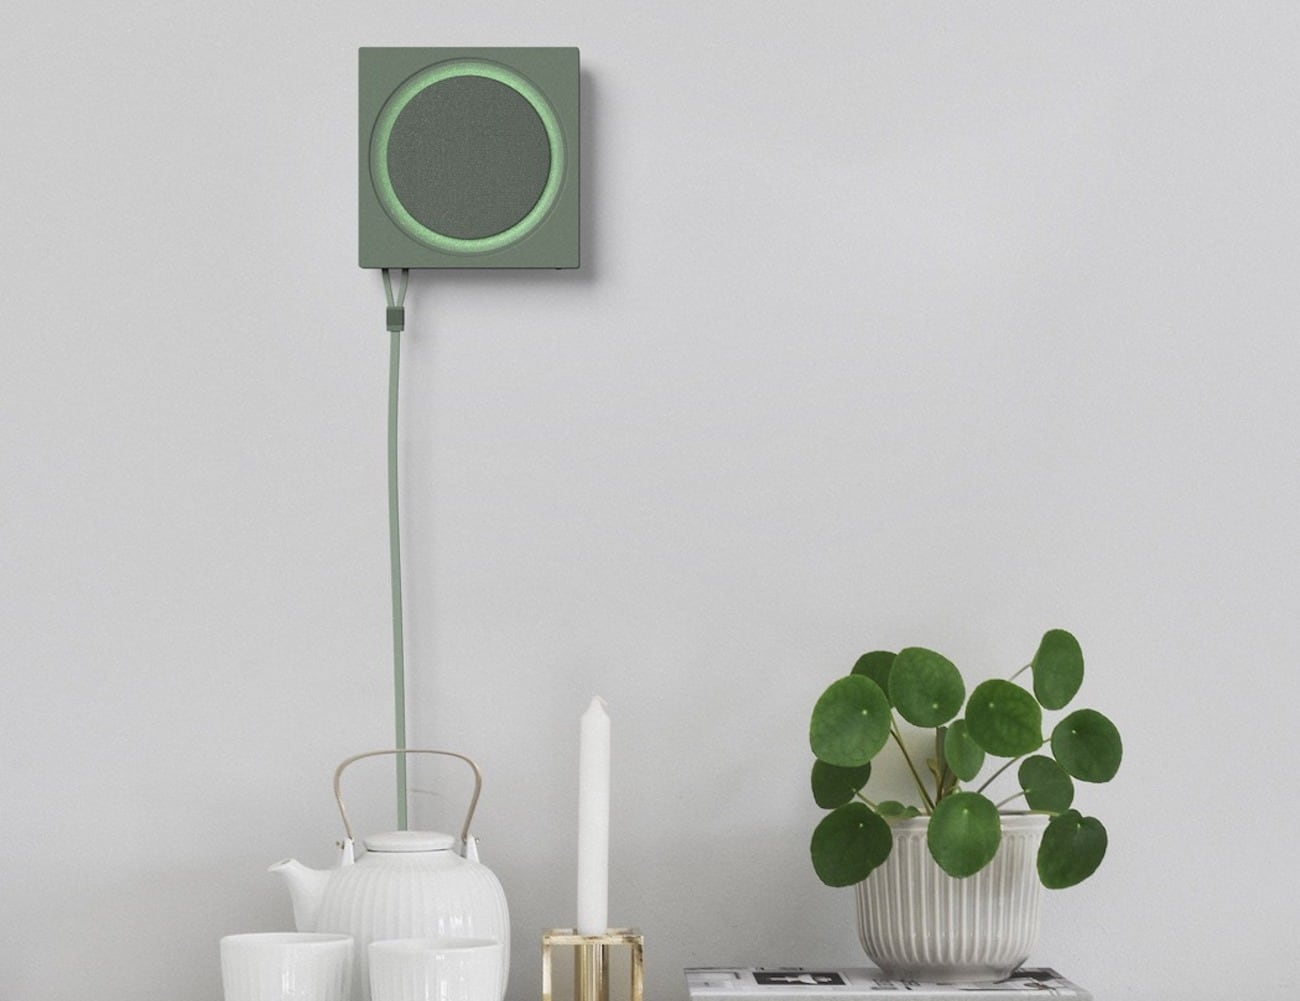 Wall Router Minimalist Hanging Internet Router helps amplify your Wi-Fi signal